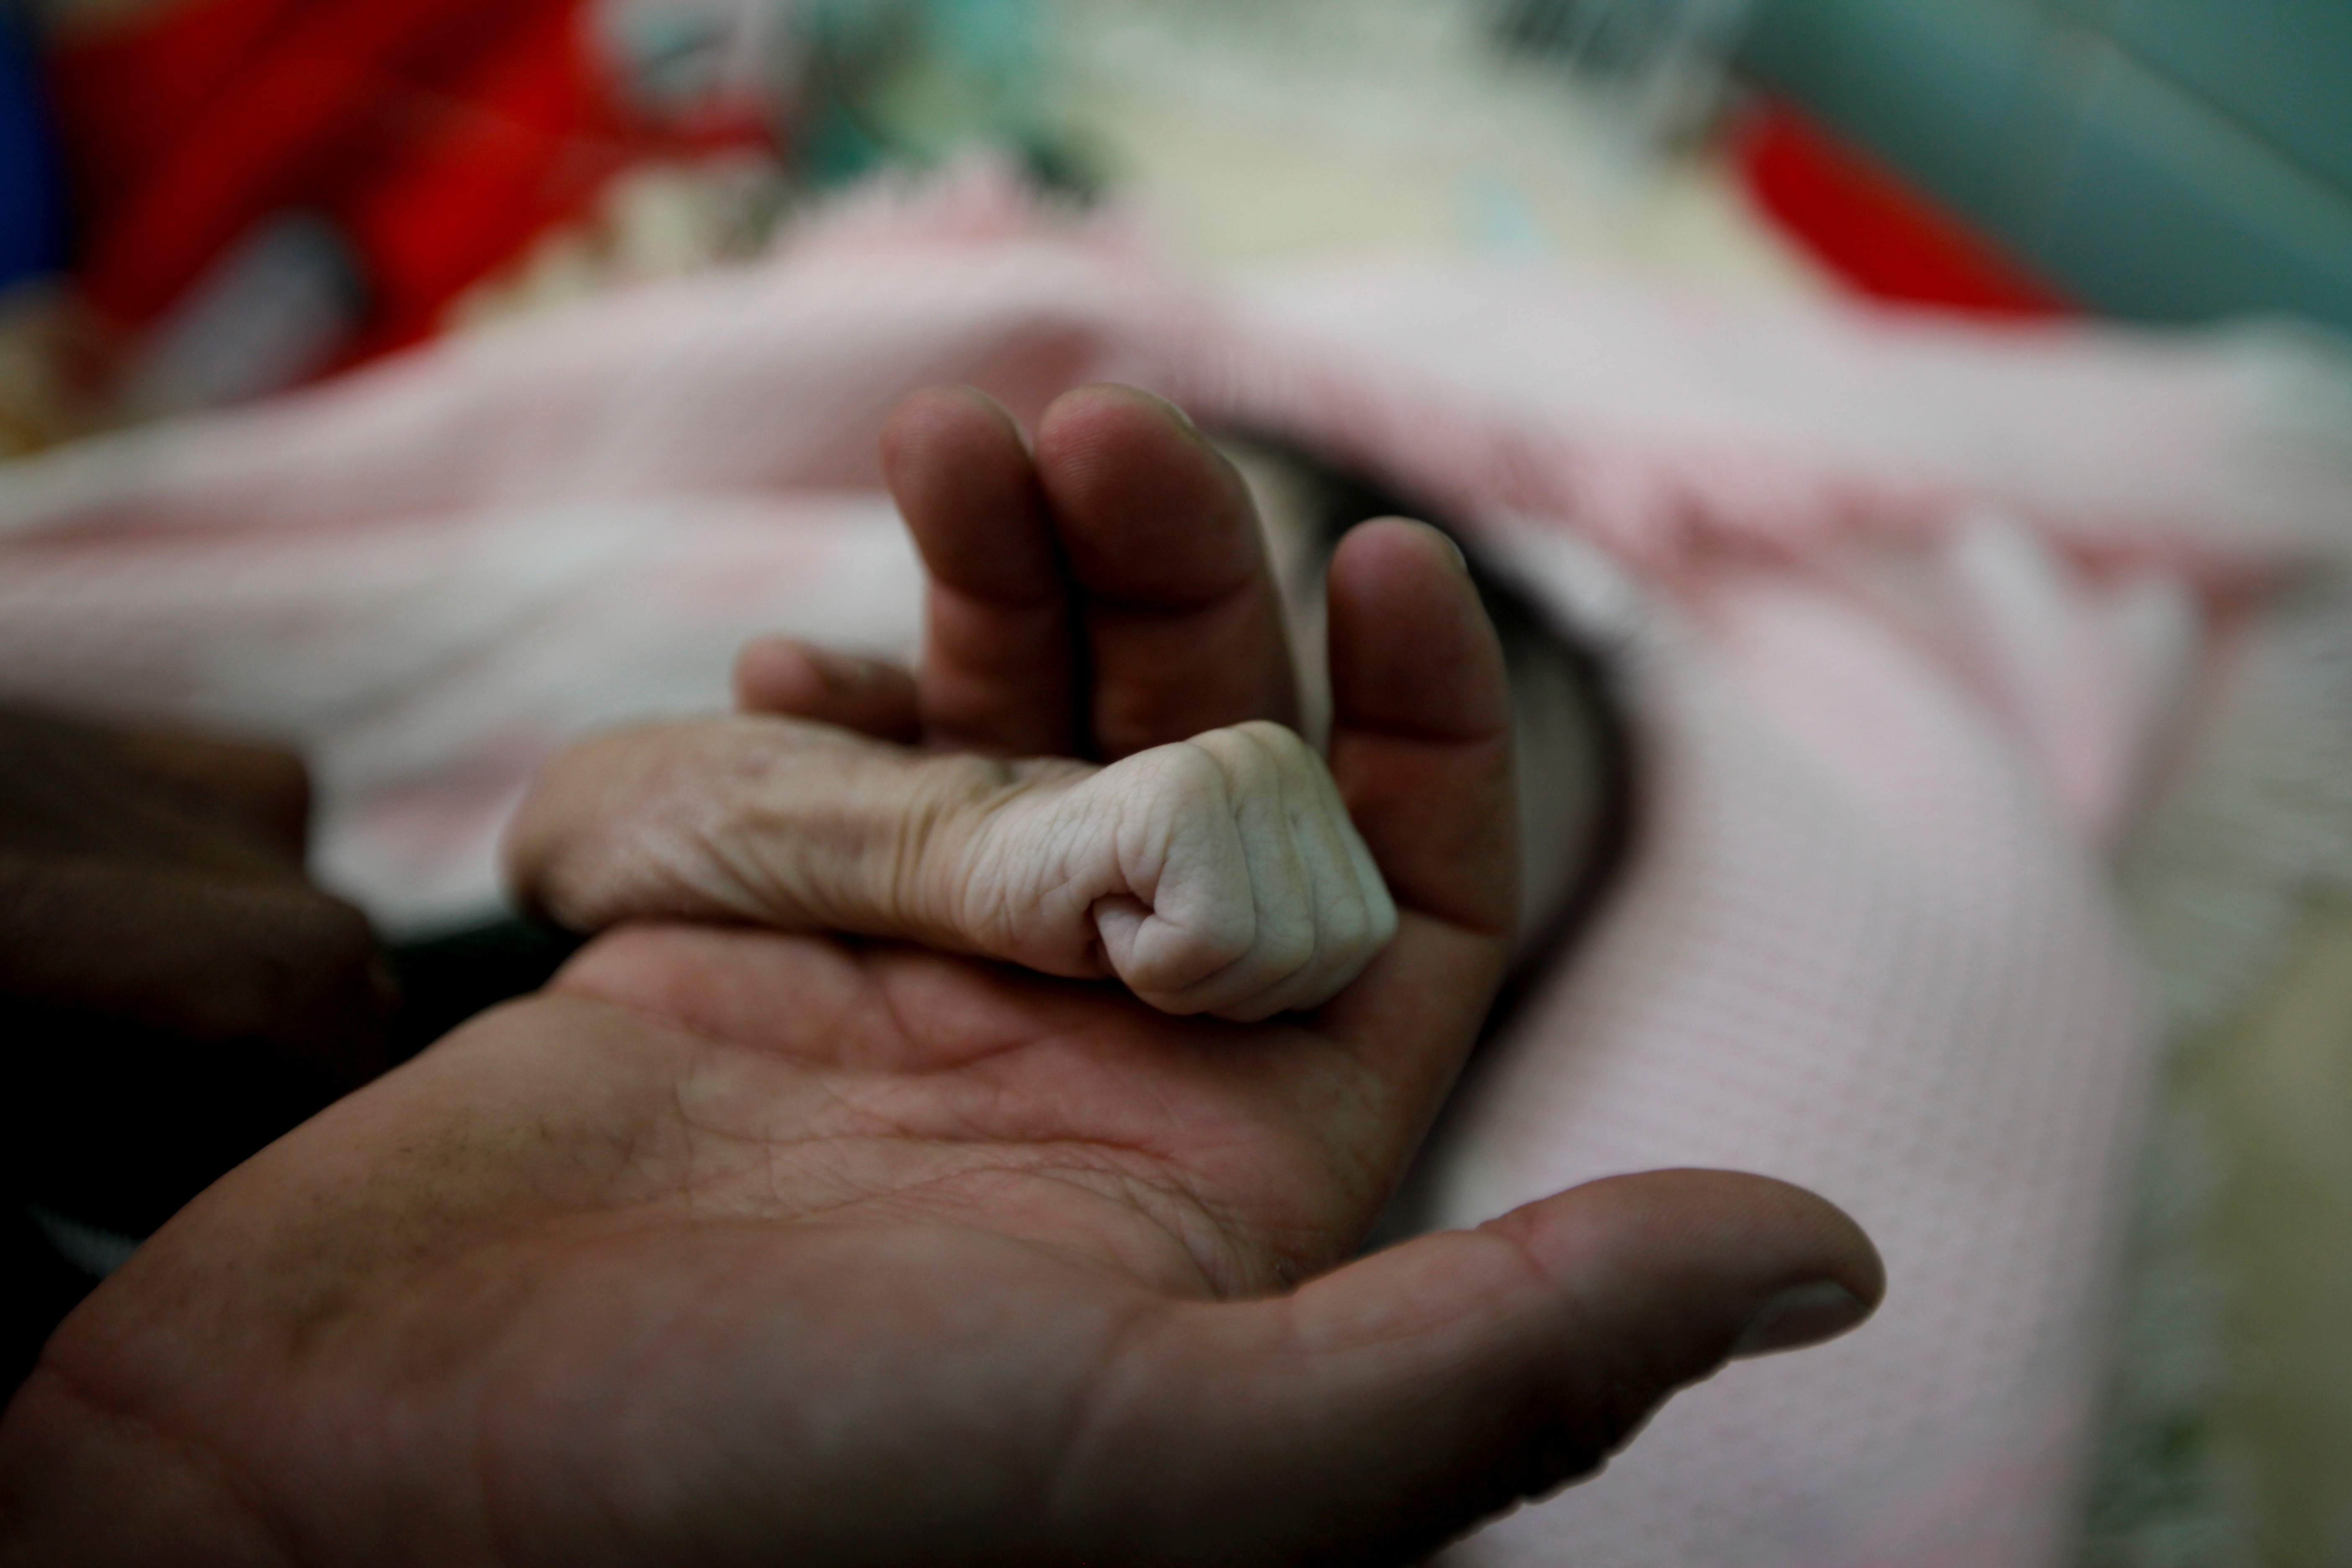 Saleh Hassan al-Faqeh holds the hand of his four-month-old daughter, Hajar, who died at the malnutrition ward of al-Sabeen hospital in Sanaa, Yemen, November 15, 2018.